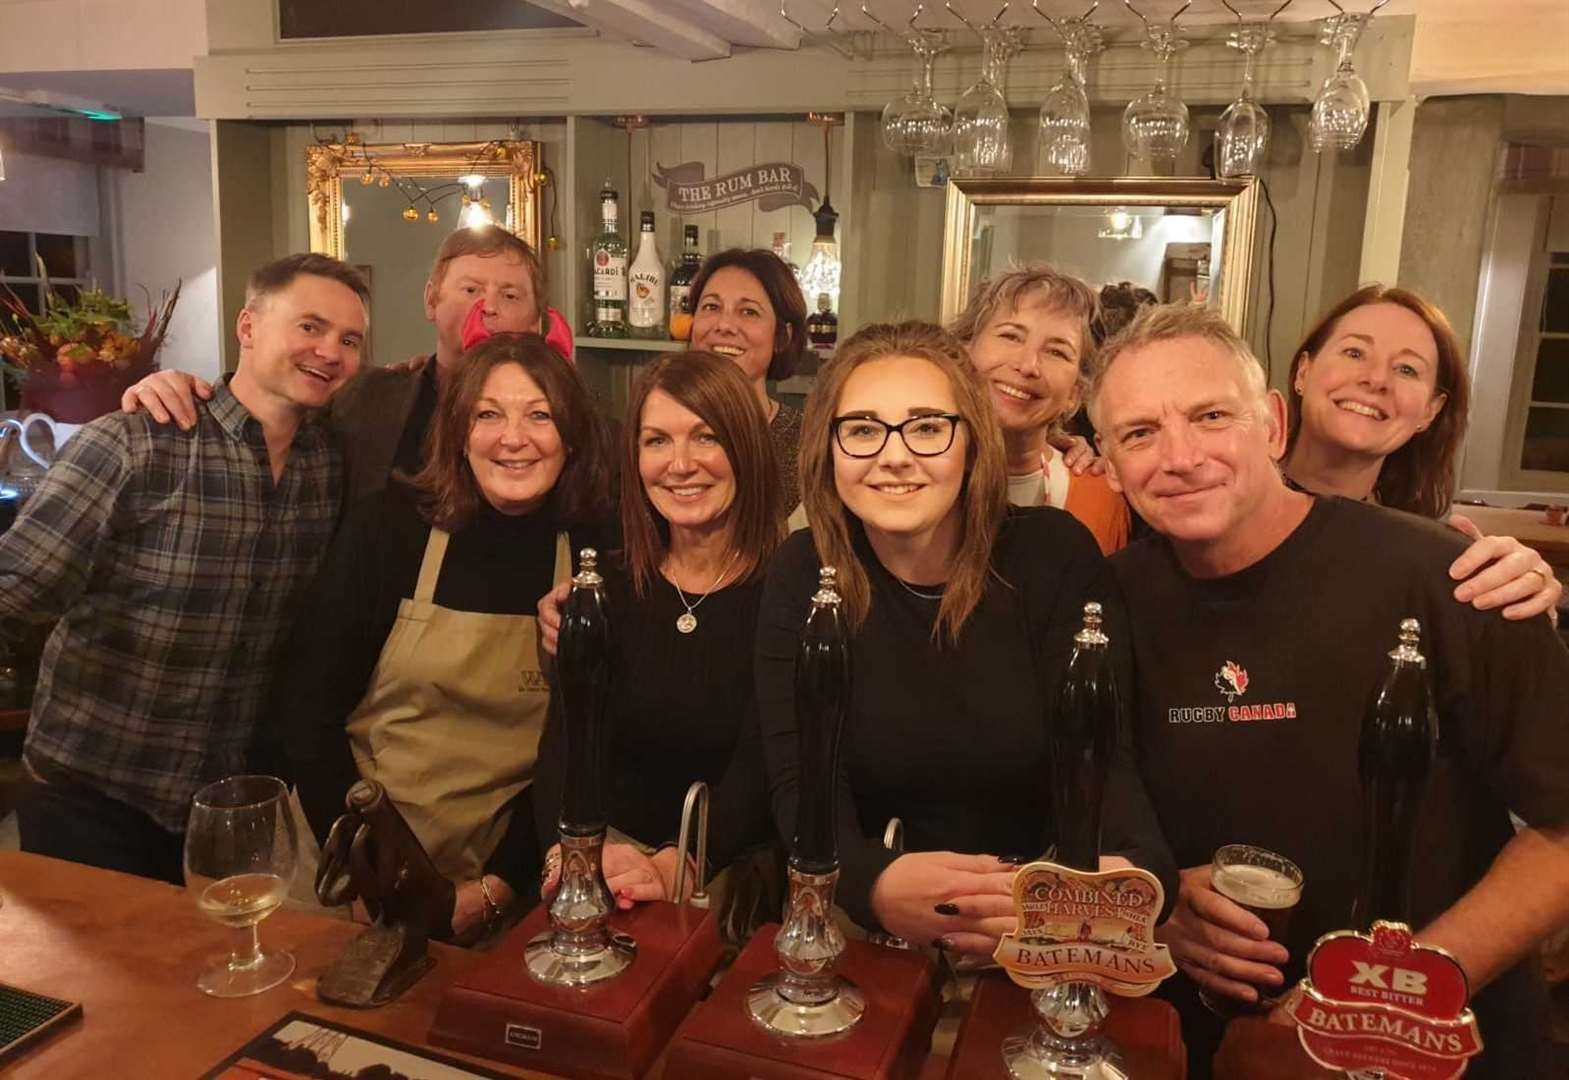 Village pub near Grantham set to reopen next year